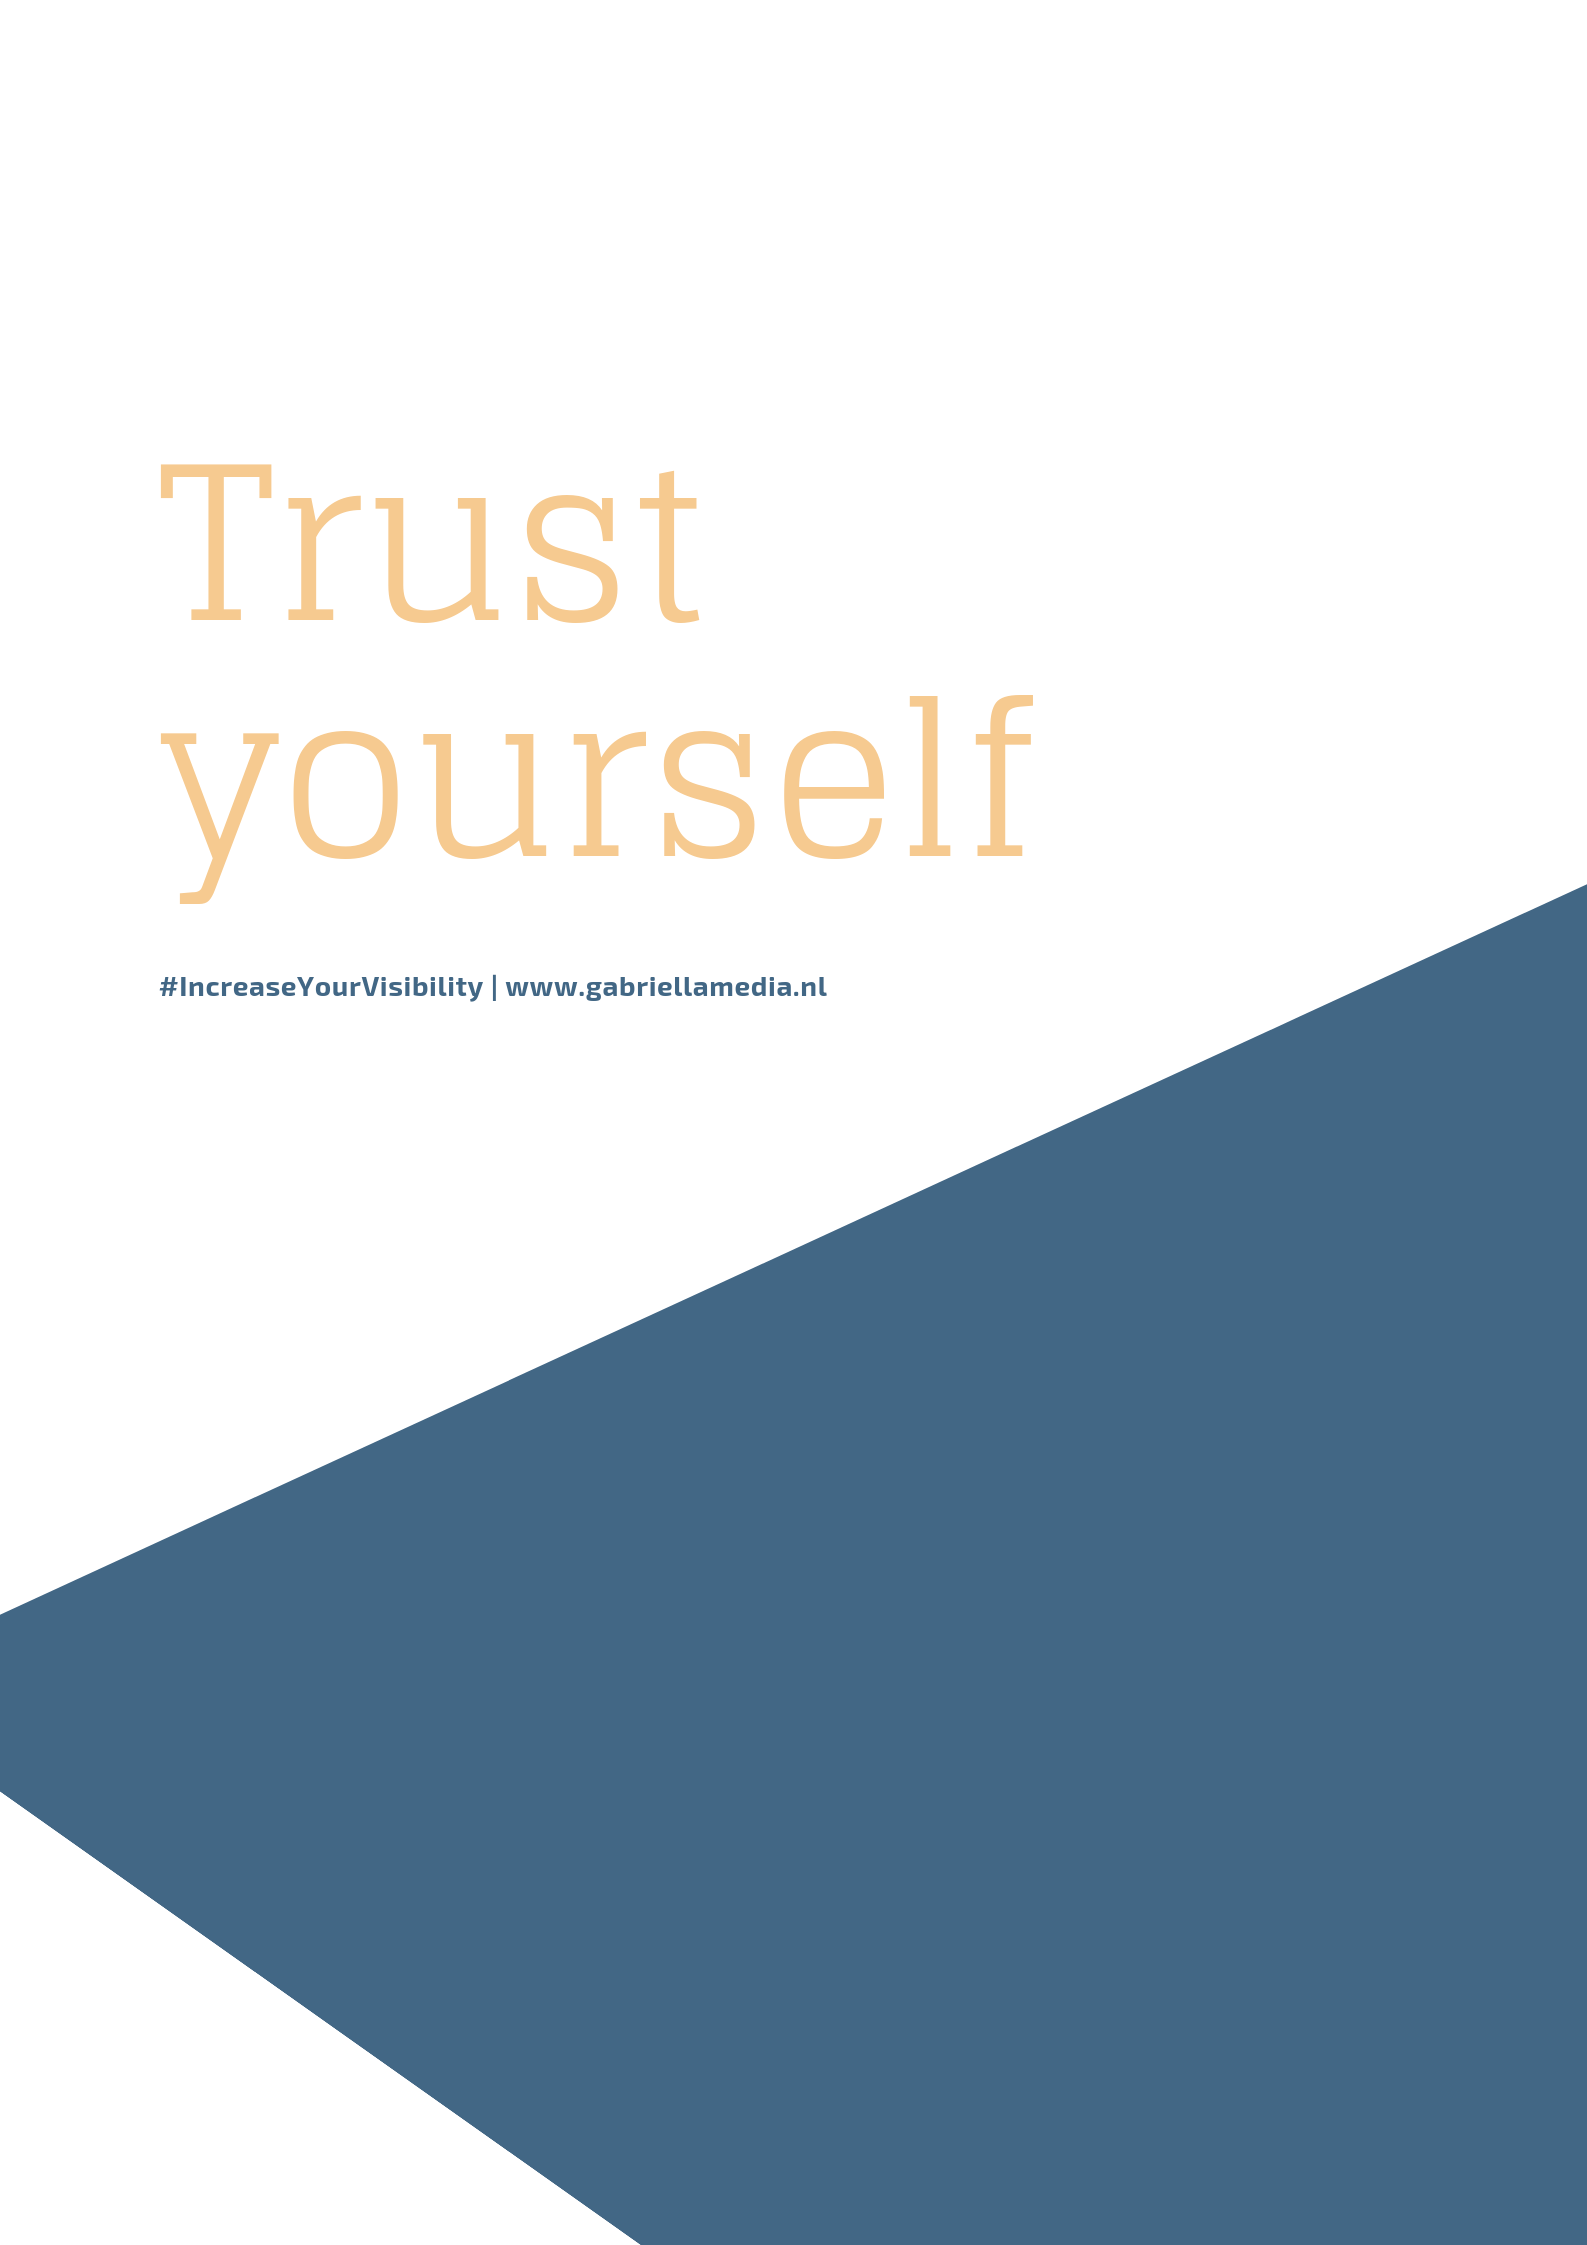 #06/2019 - Printable | Trust yourself